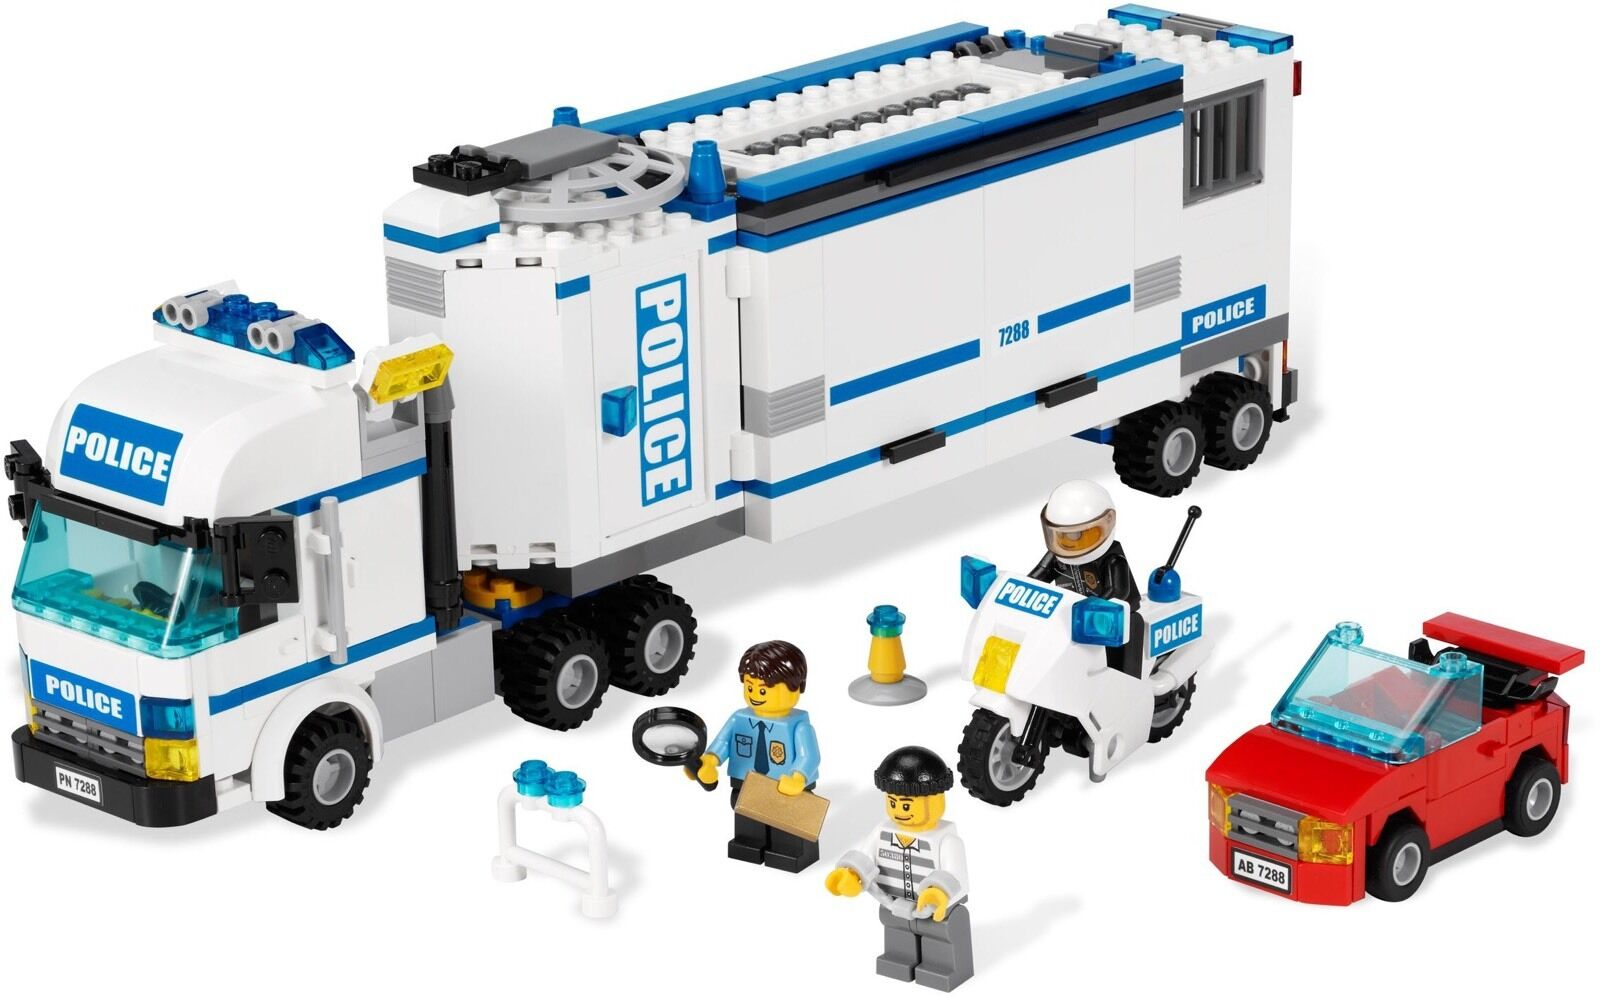 Lego 7288 Mobile Police Unit (Released 2011)